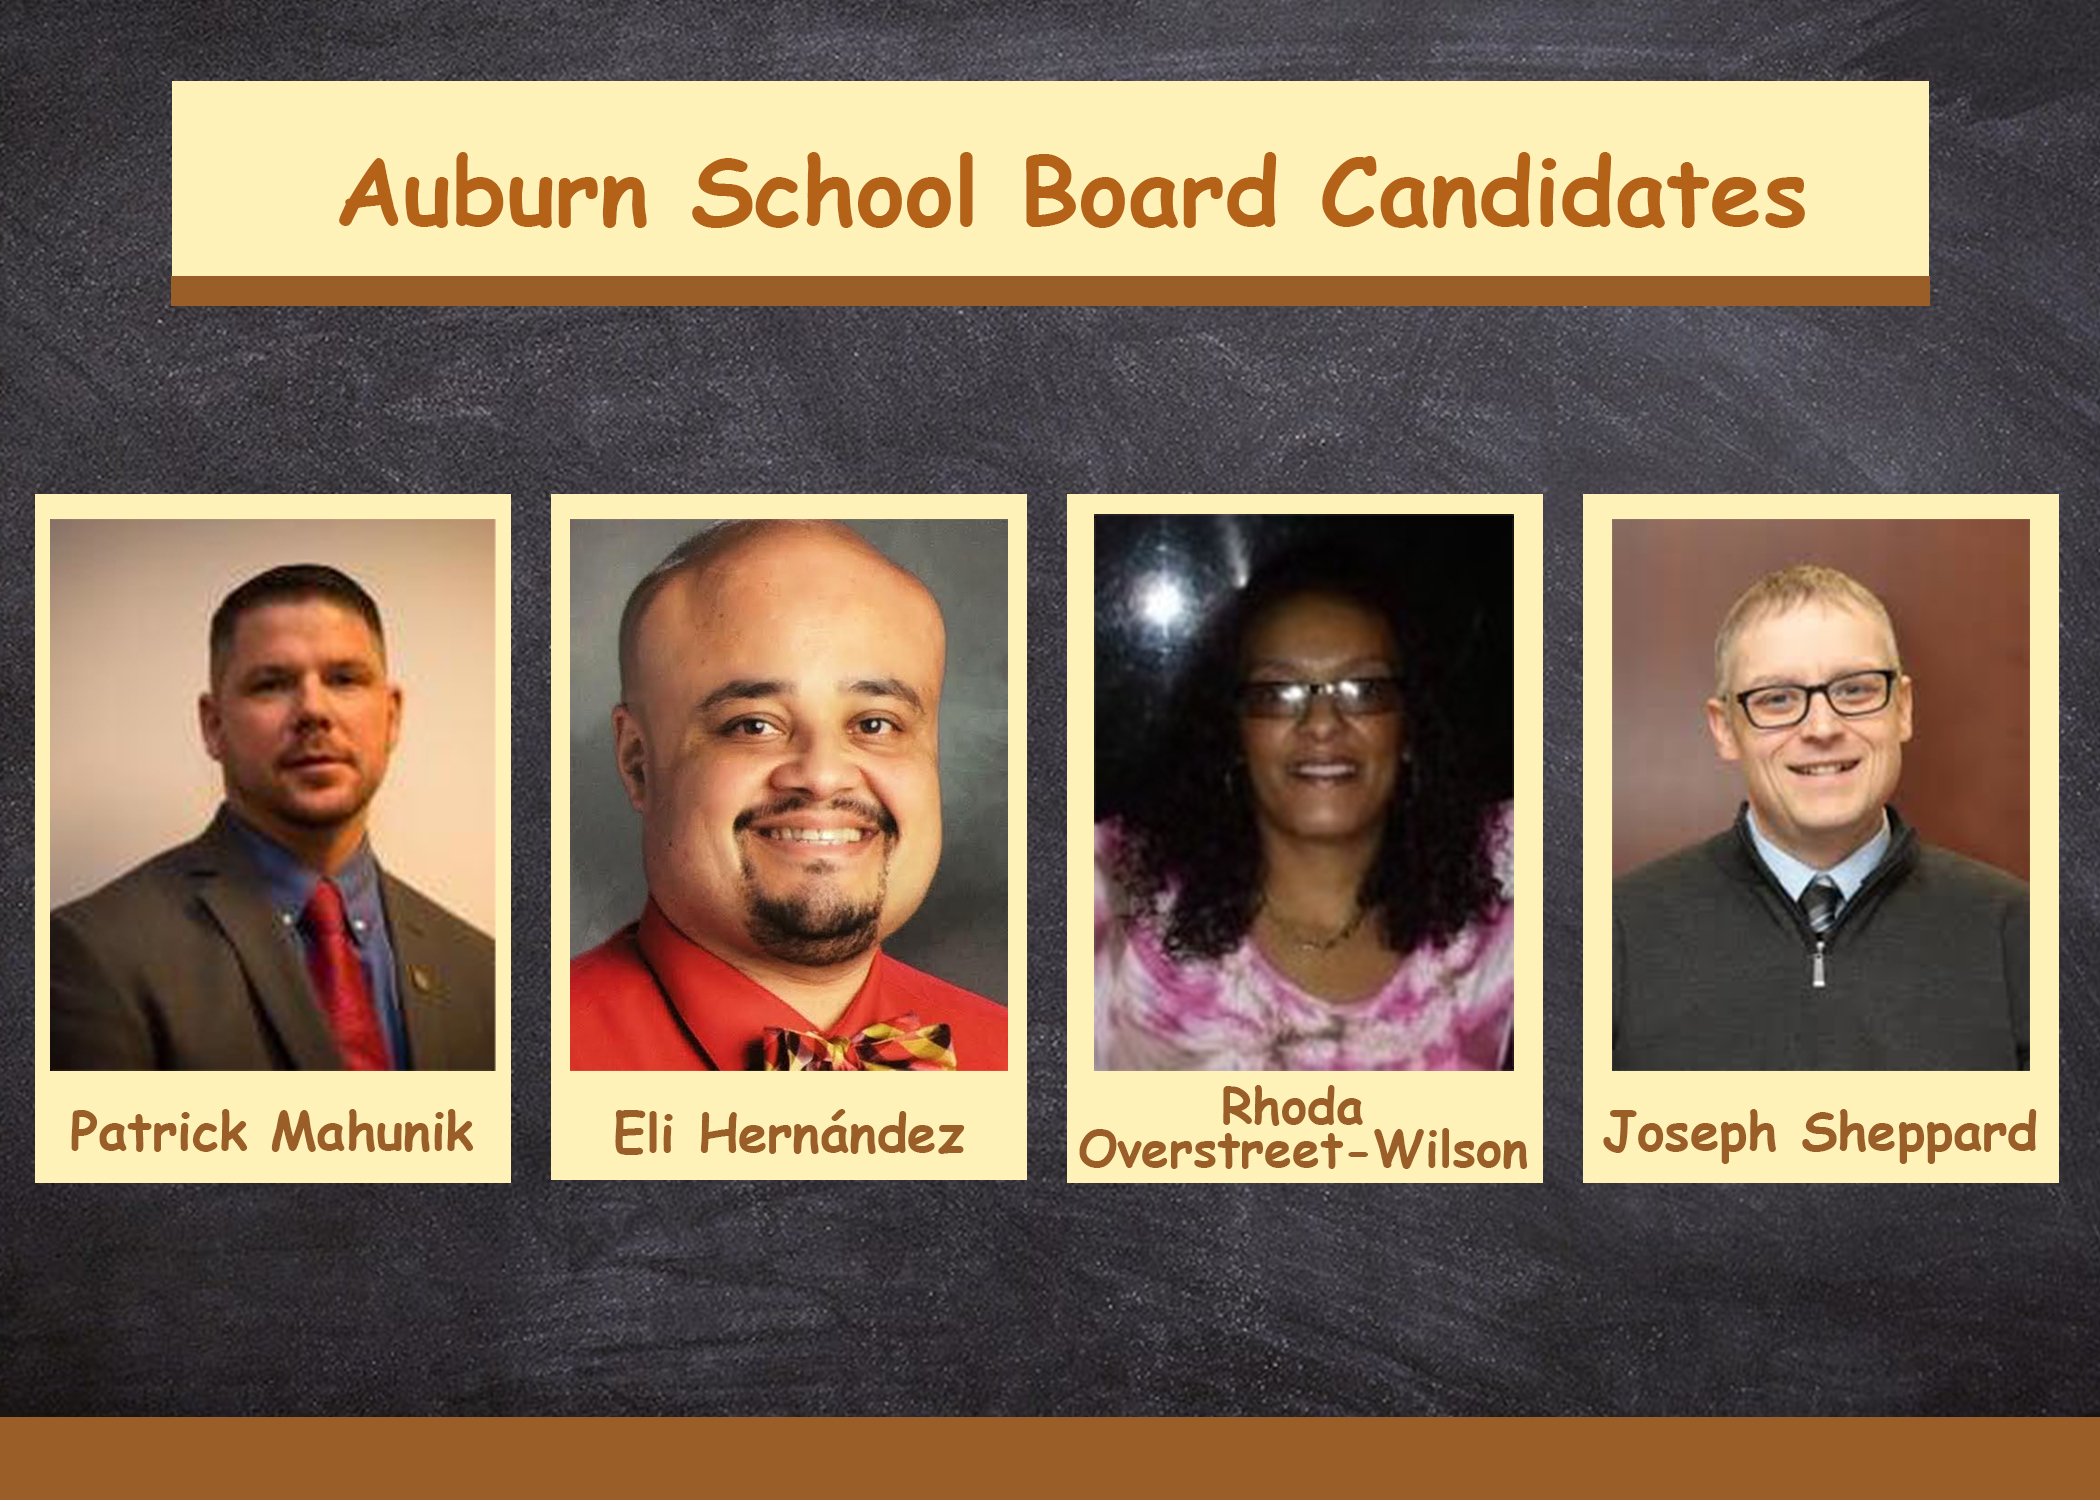 Q&a With School Board Candidates From The Auburn Enlarged Pertaining To Ithaca City School District Calendar